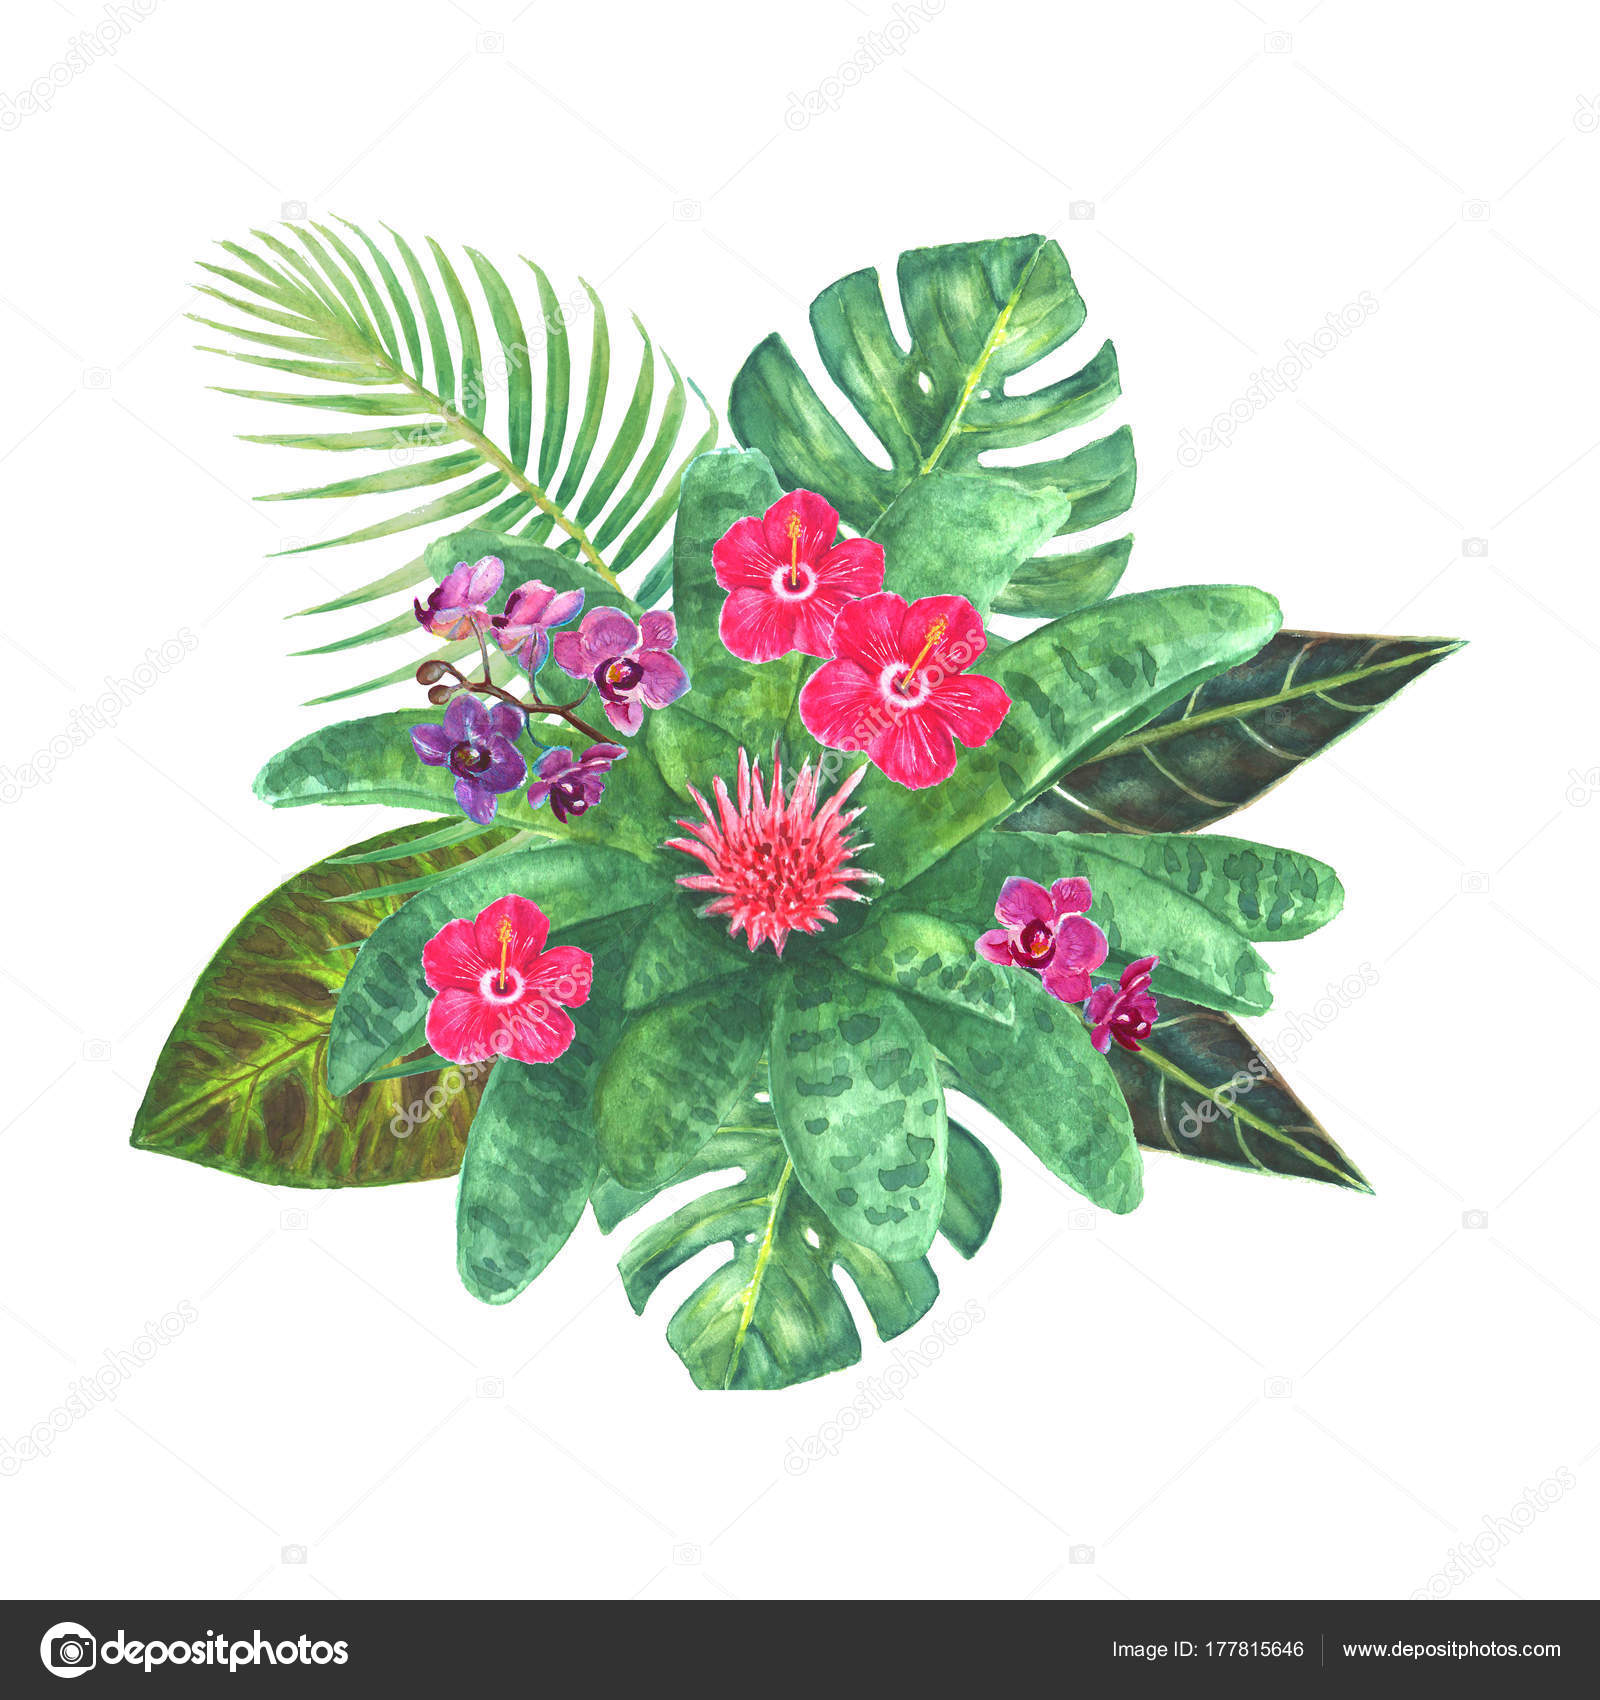 Exotic tropical flowers bouquet — Stock Photo © OlgaZe #177815646